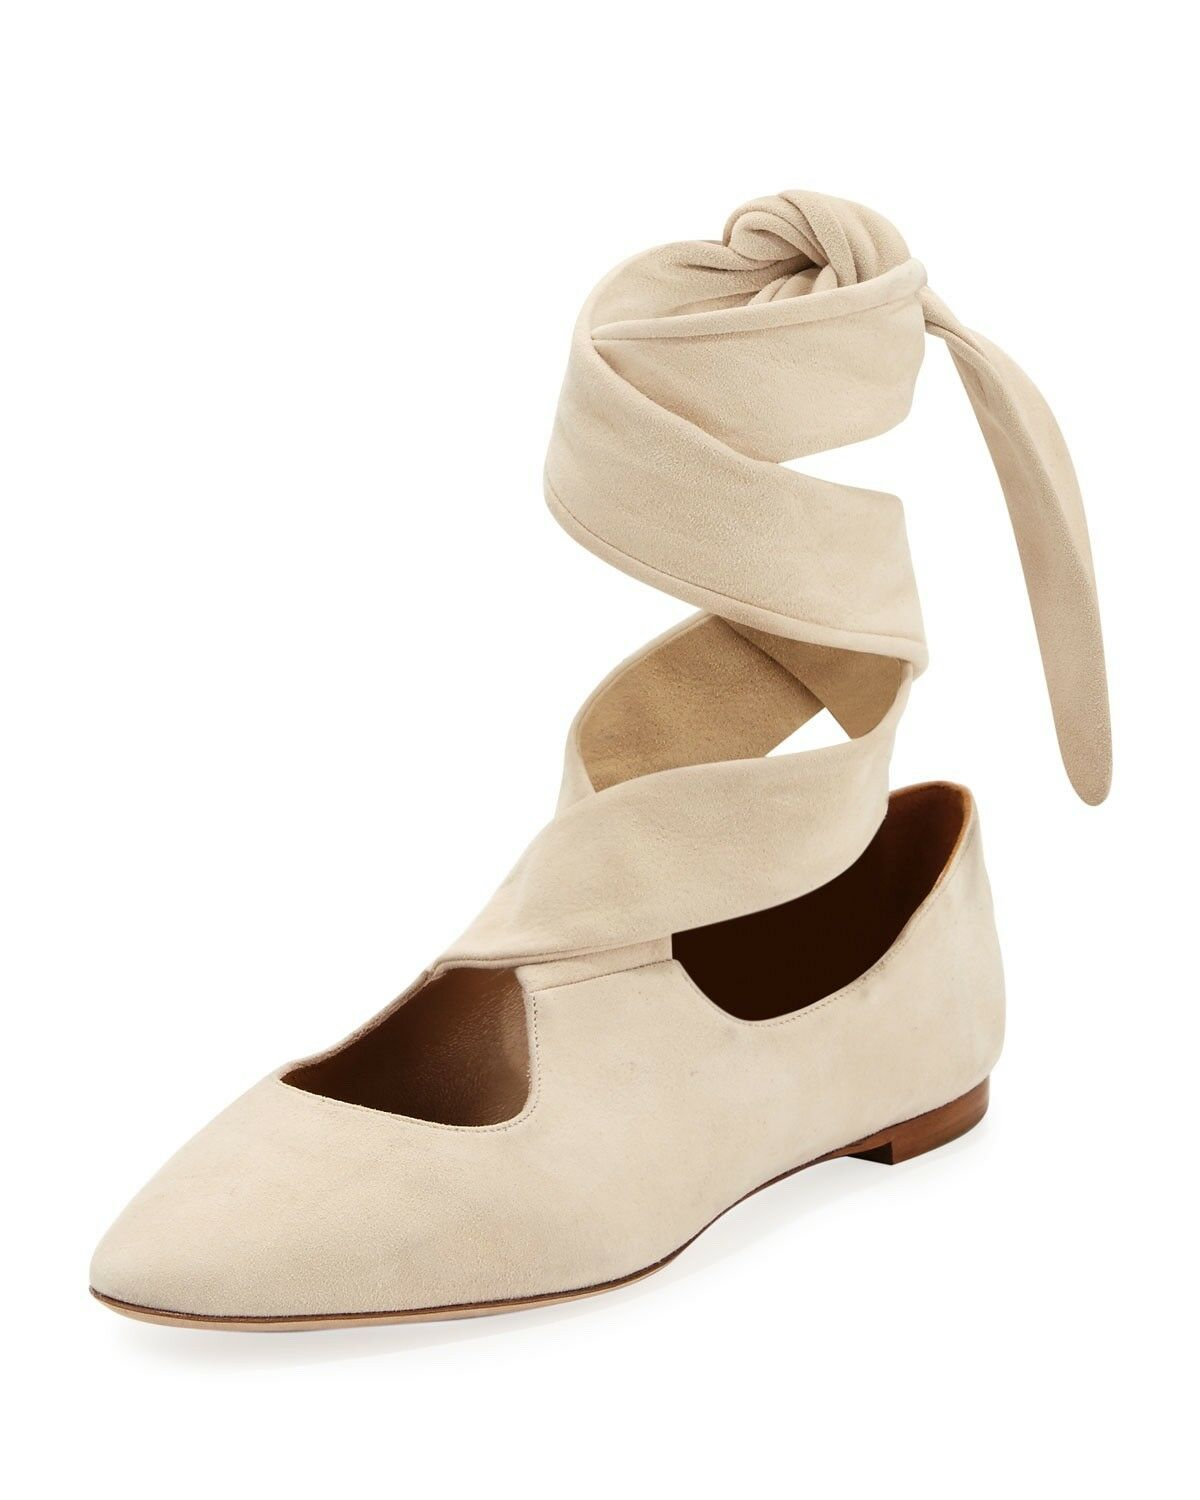 THE ROW Elodie Ballet Flats Beige Suede Size 39.5